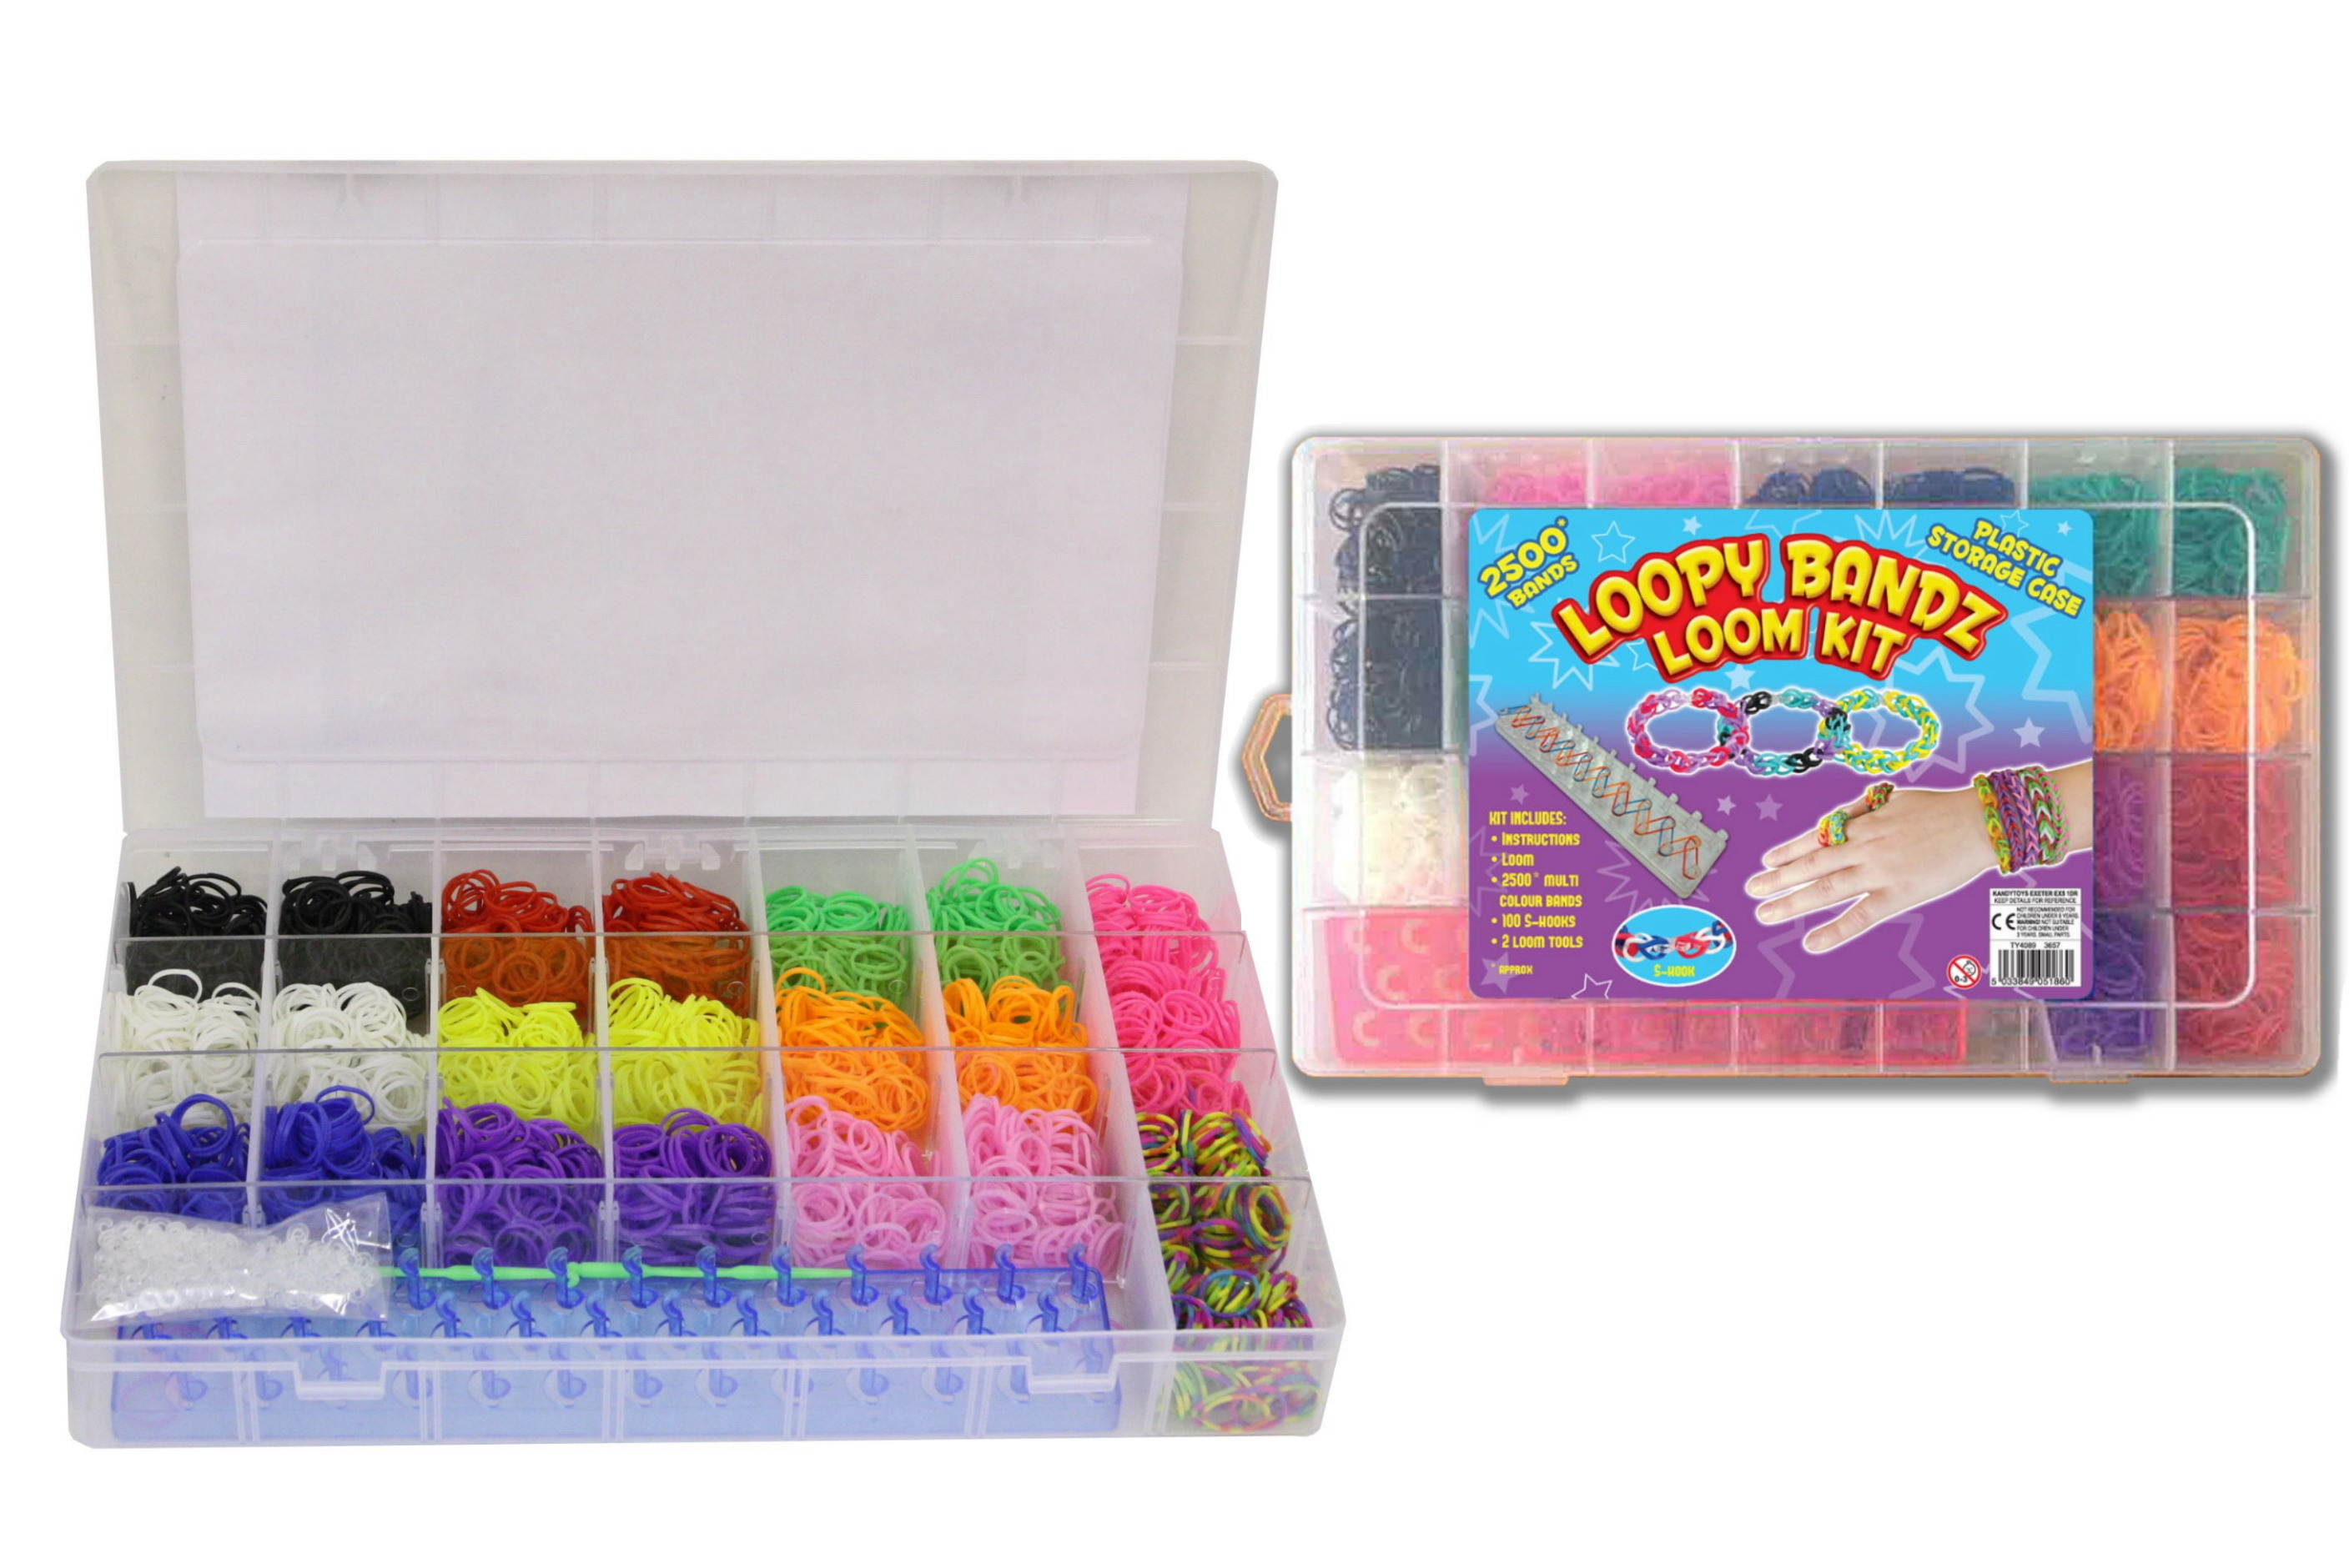 Loom Band Kit In Plastic Case With 2500pc Bands